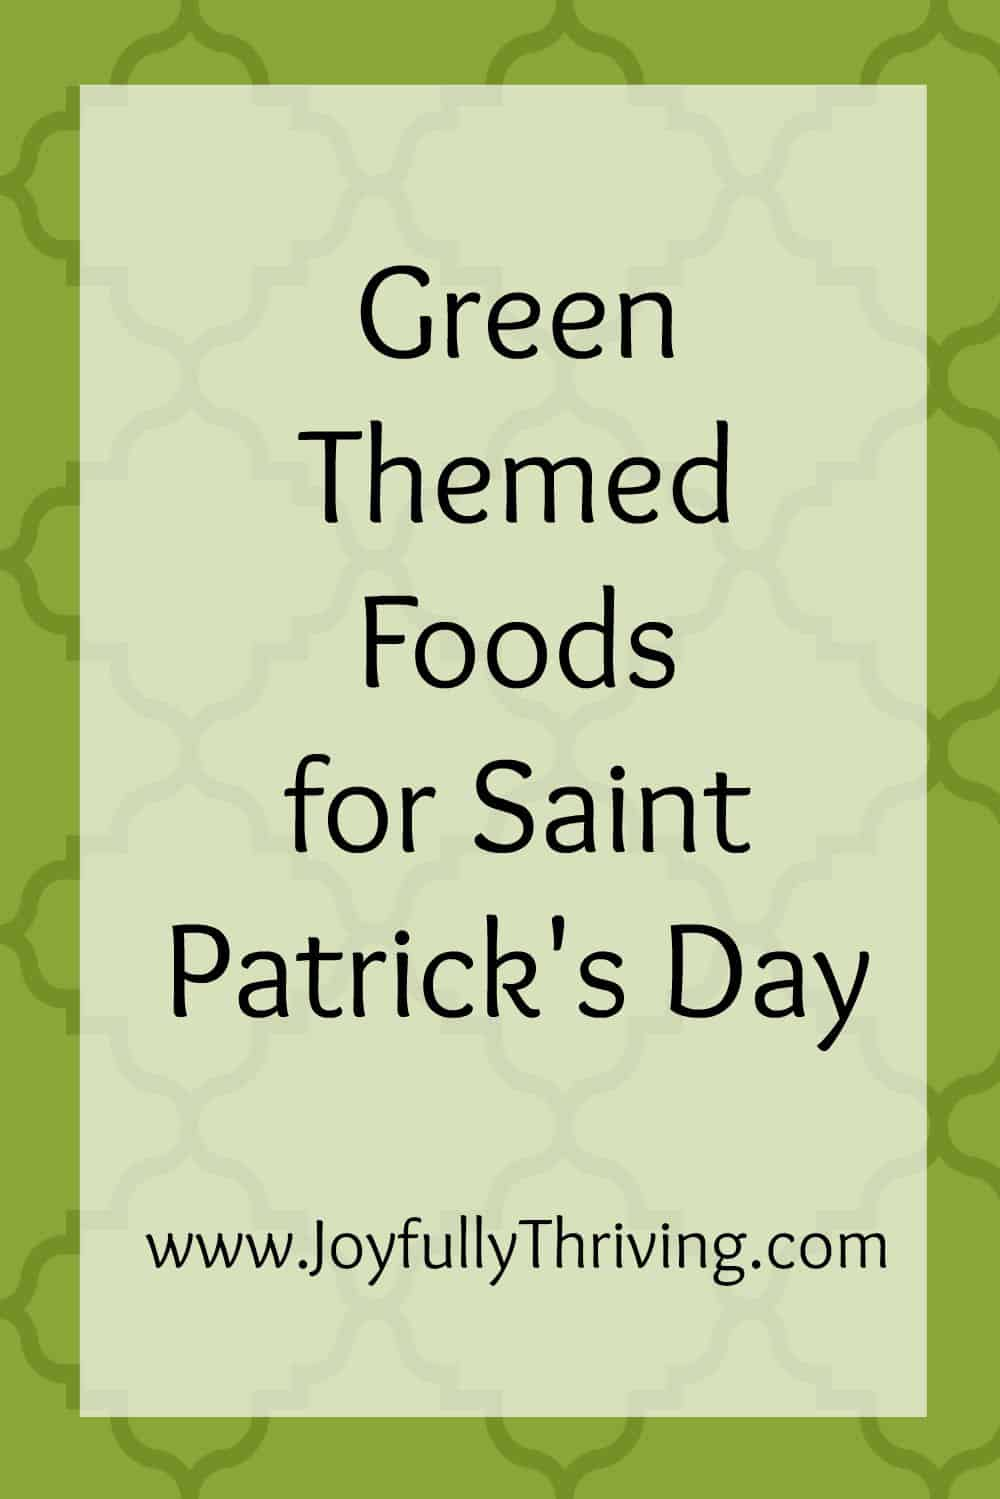 Green Themed Food Ideas for St. Patrick's Day